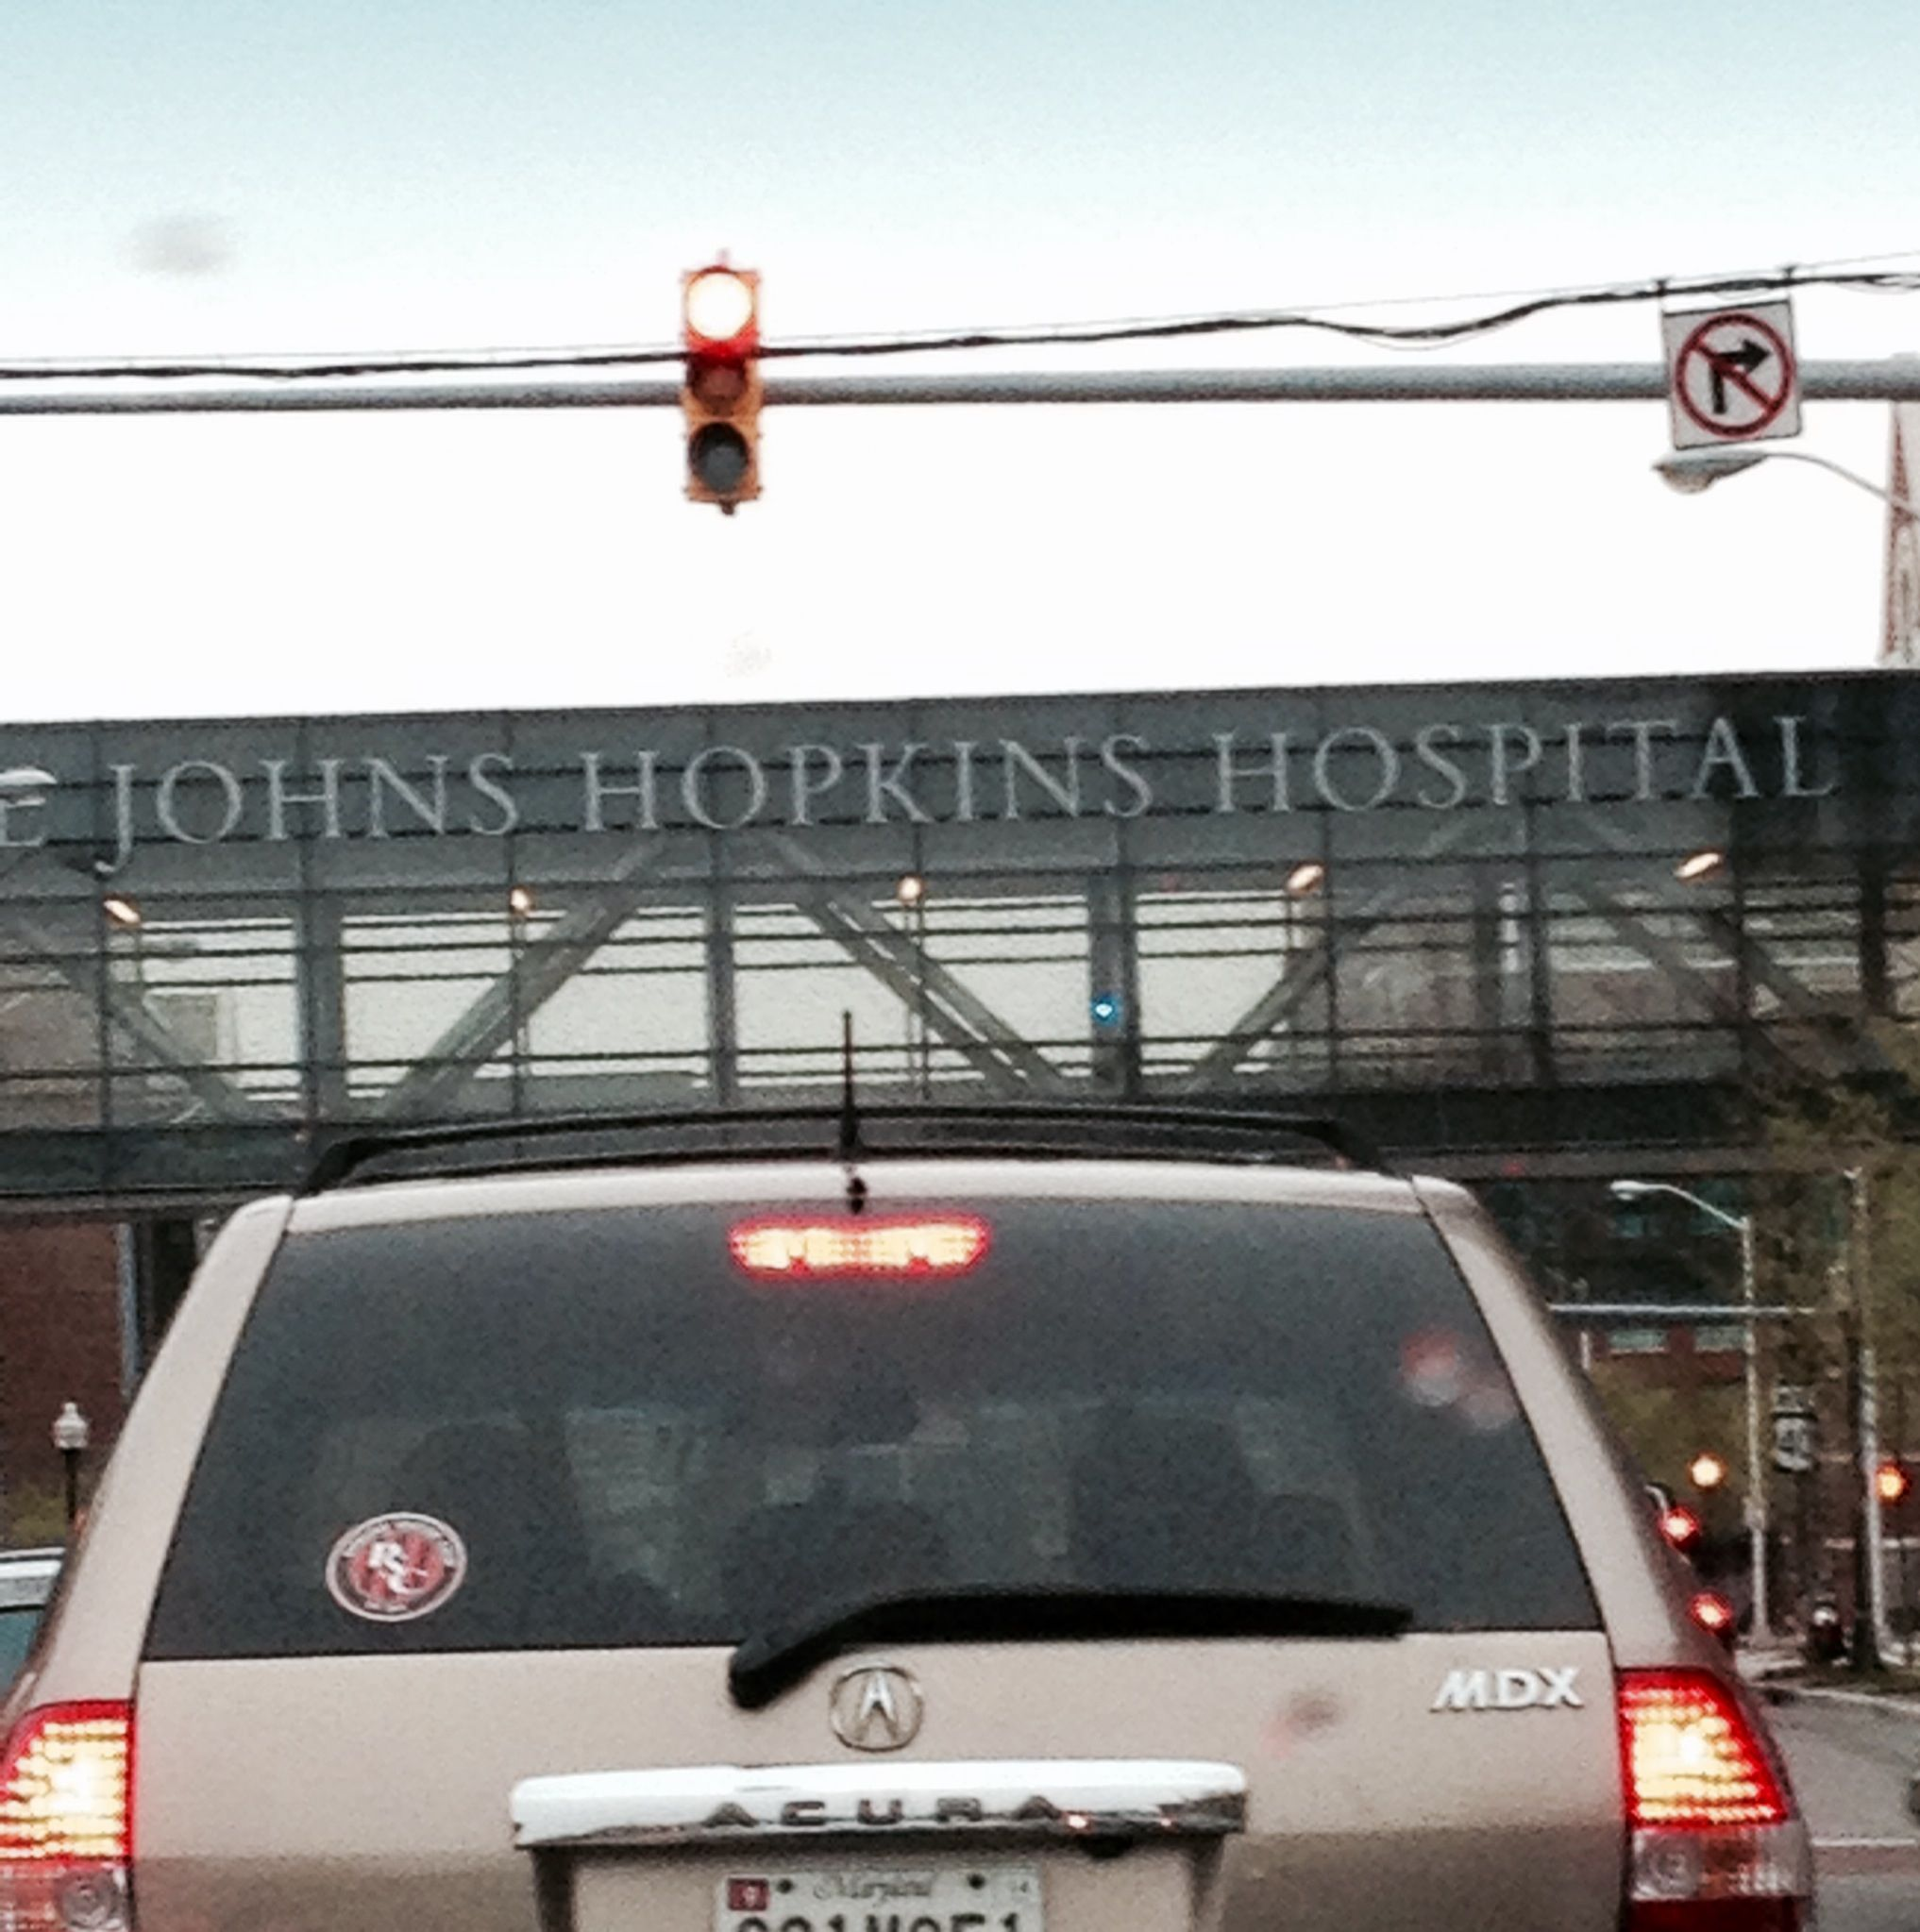 johns hopkins hospital...johnny hop... Johns hopkins